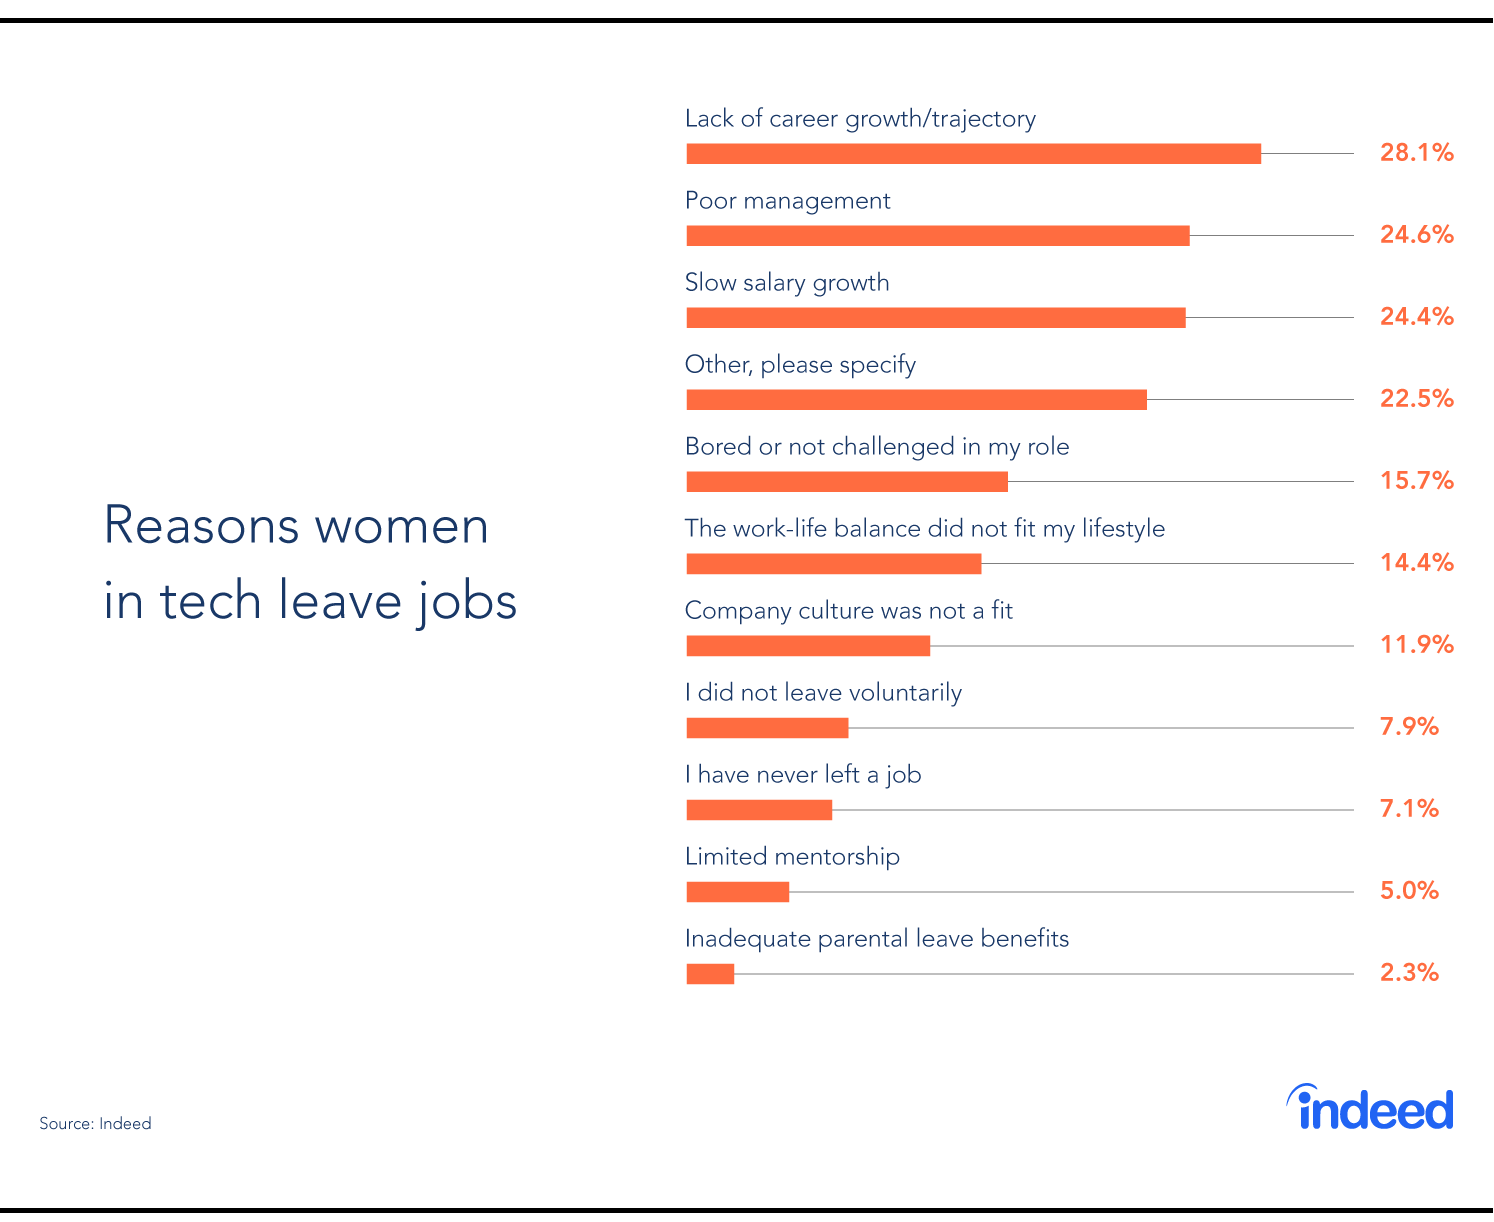 Bar graph showing the reasons women in tech leave jobs.